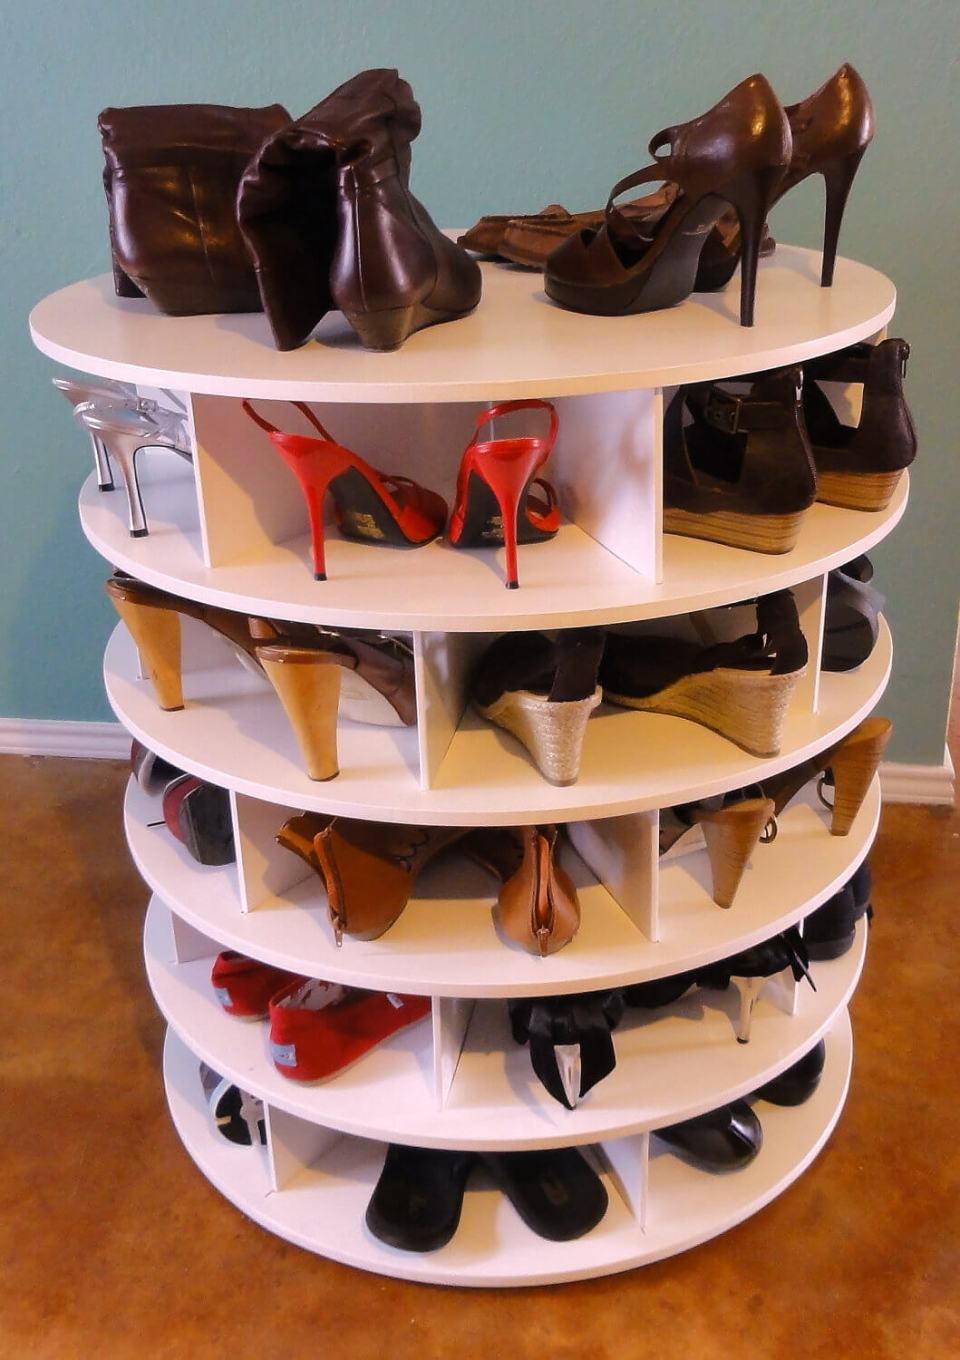 Lazy susan for shoe storage | Smart Shoe Storage Ideas & Designs For Any Zoom Size